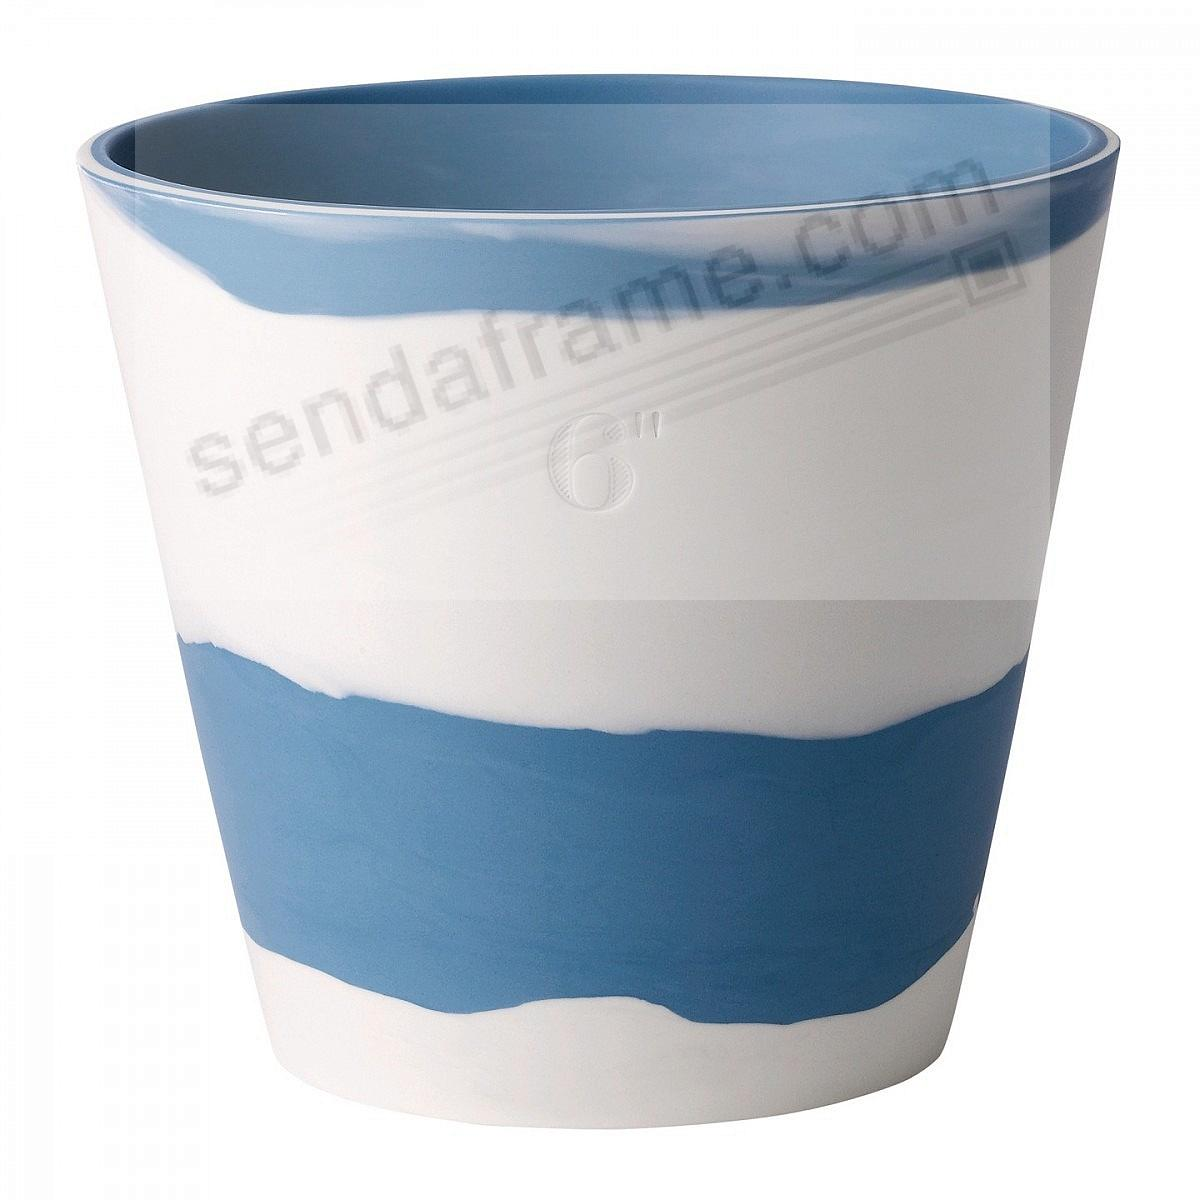 BURLINGTON PLANTER POT Blue+White 6in by Wedgwood®